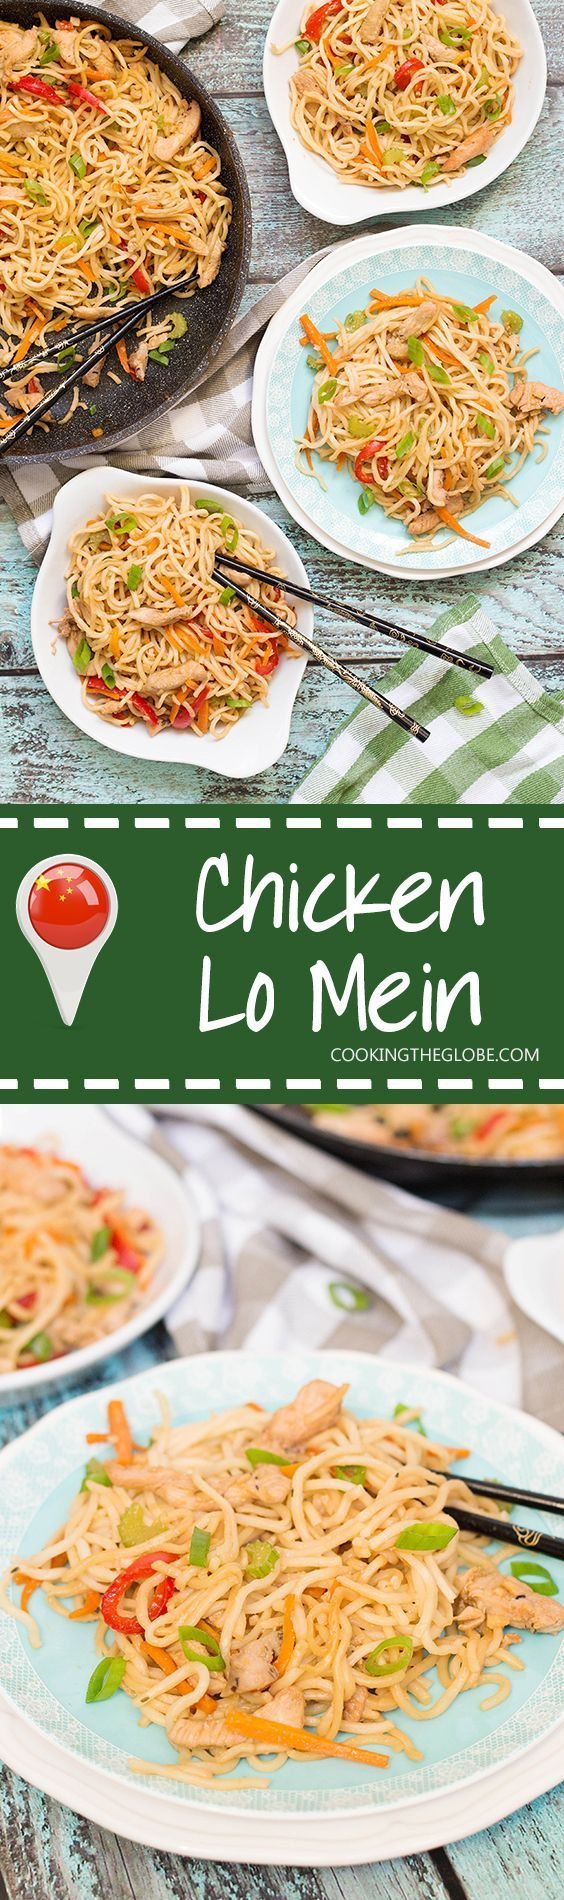 If you have ever been in Chinese restaurant, you must have tried Chicken Lo Mein. Did you know that you can make it at home? It's quick and easy to prepare! | cookingtheglobe.com